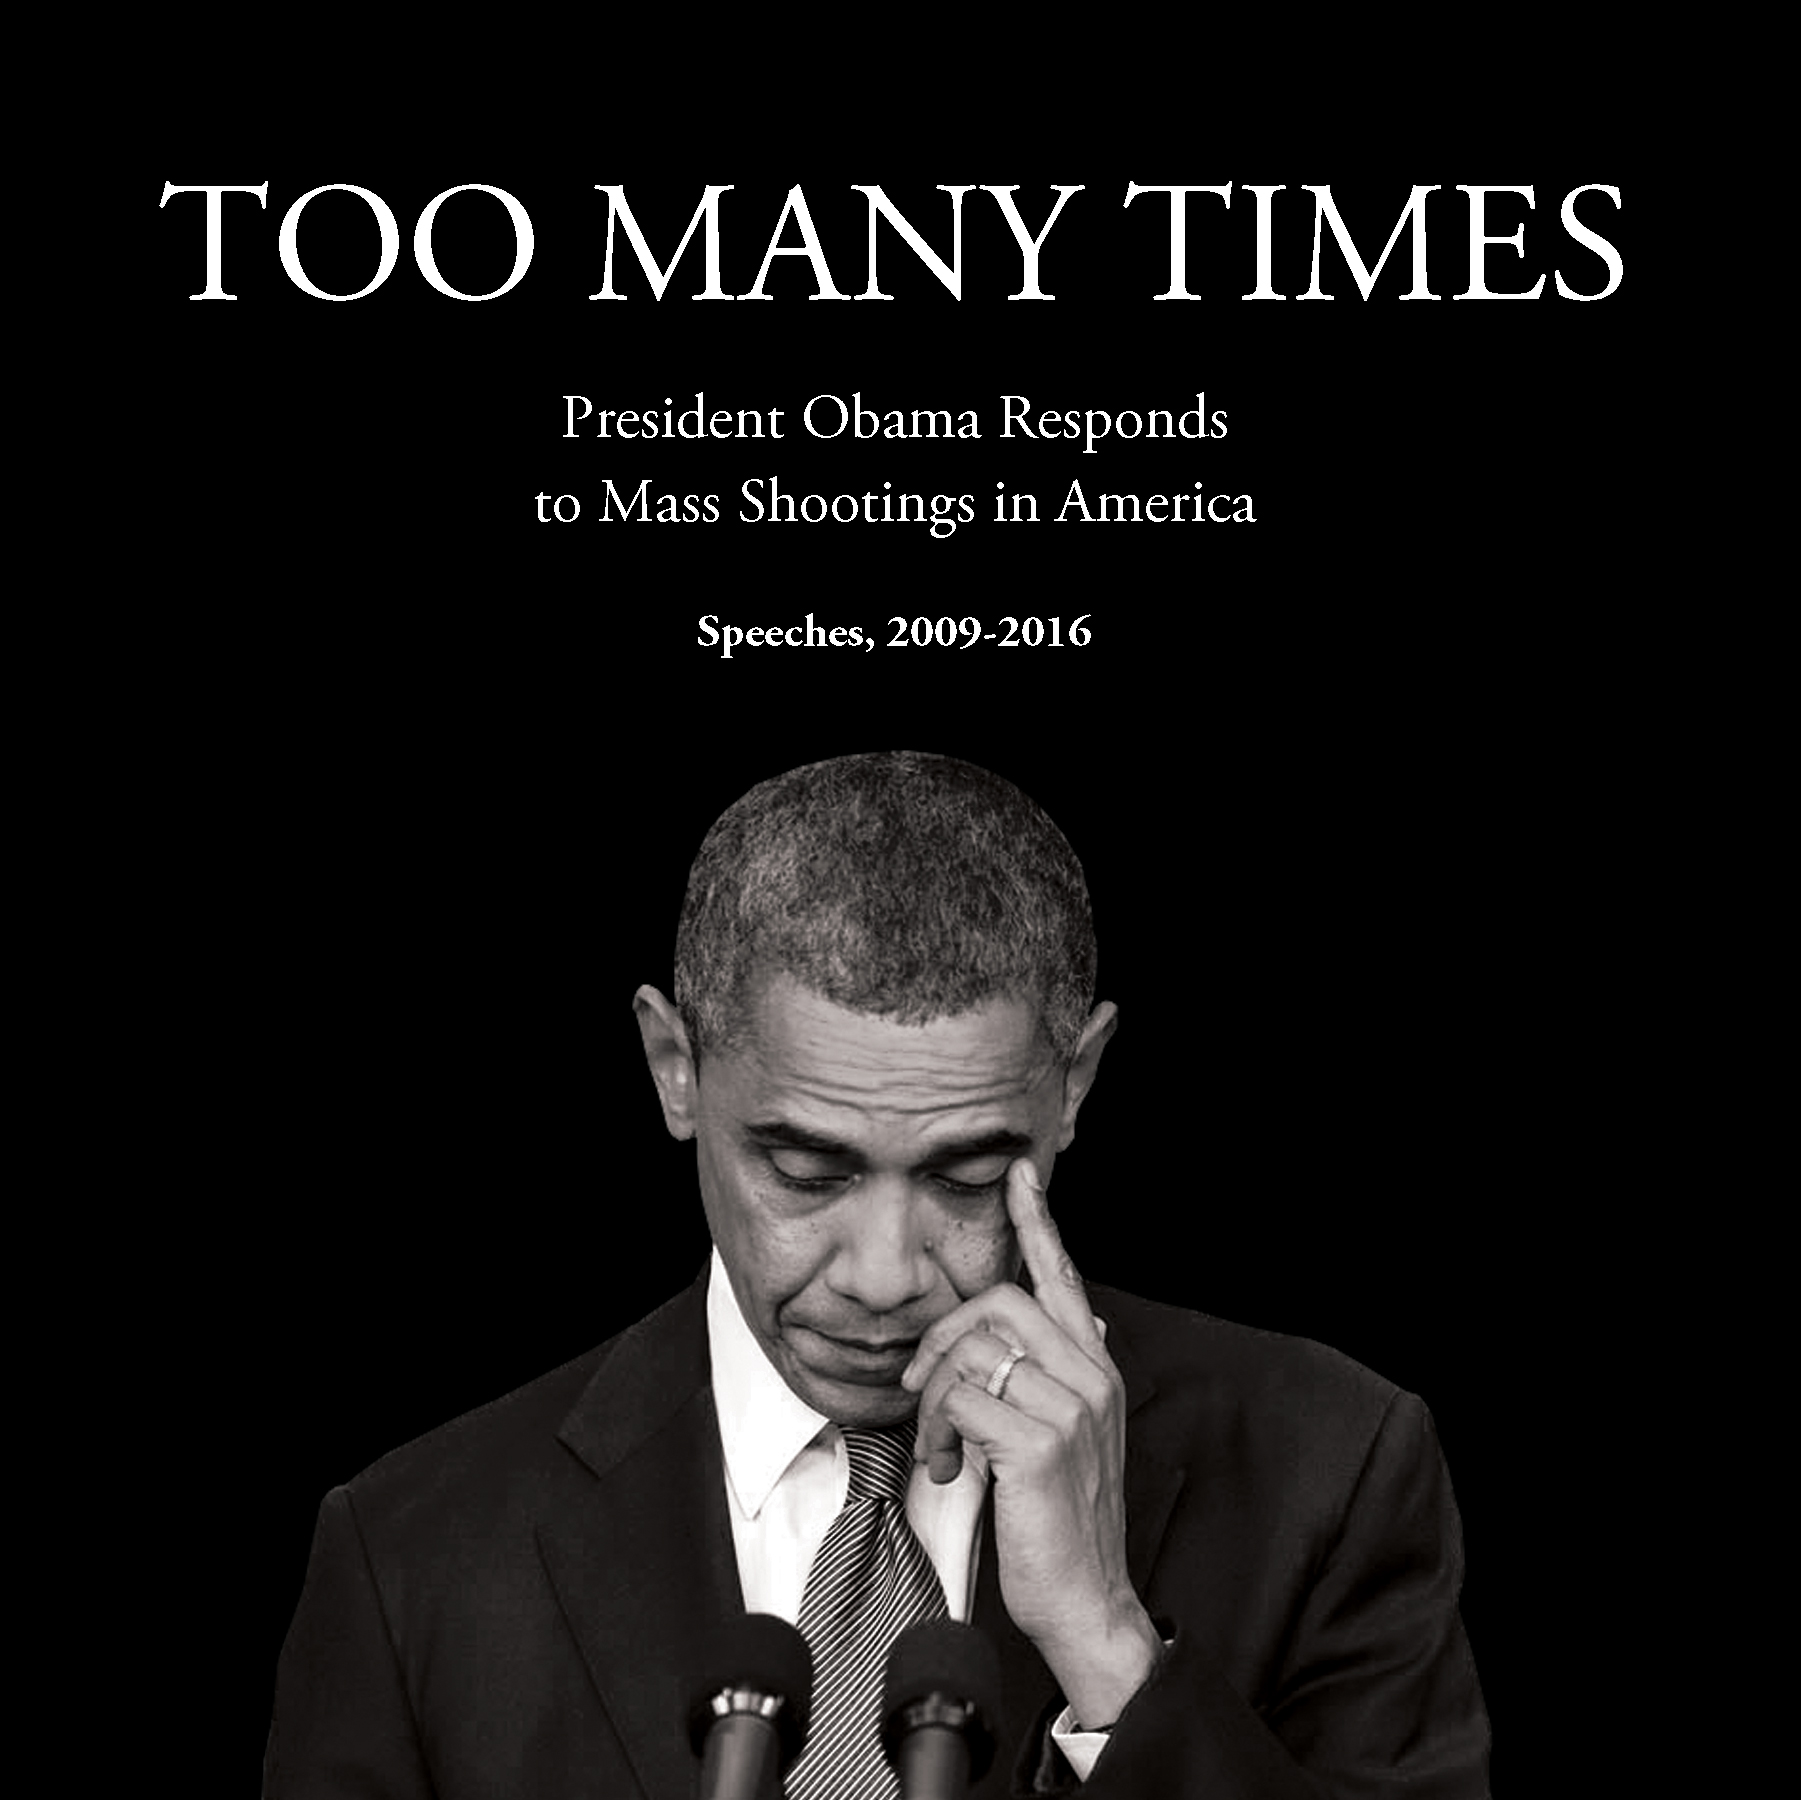 Too Many Times: President Obama Responds to Mass Shootings in America